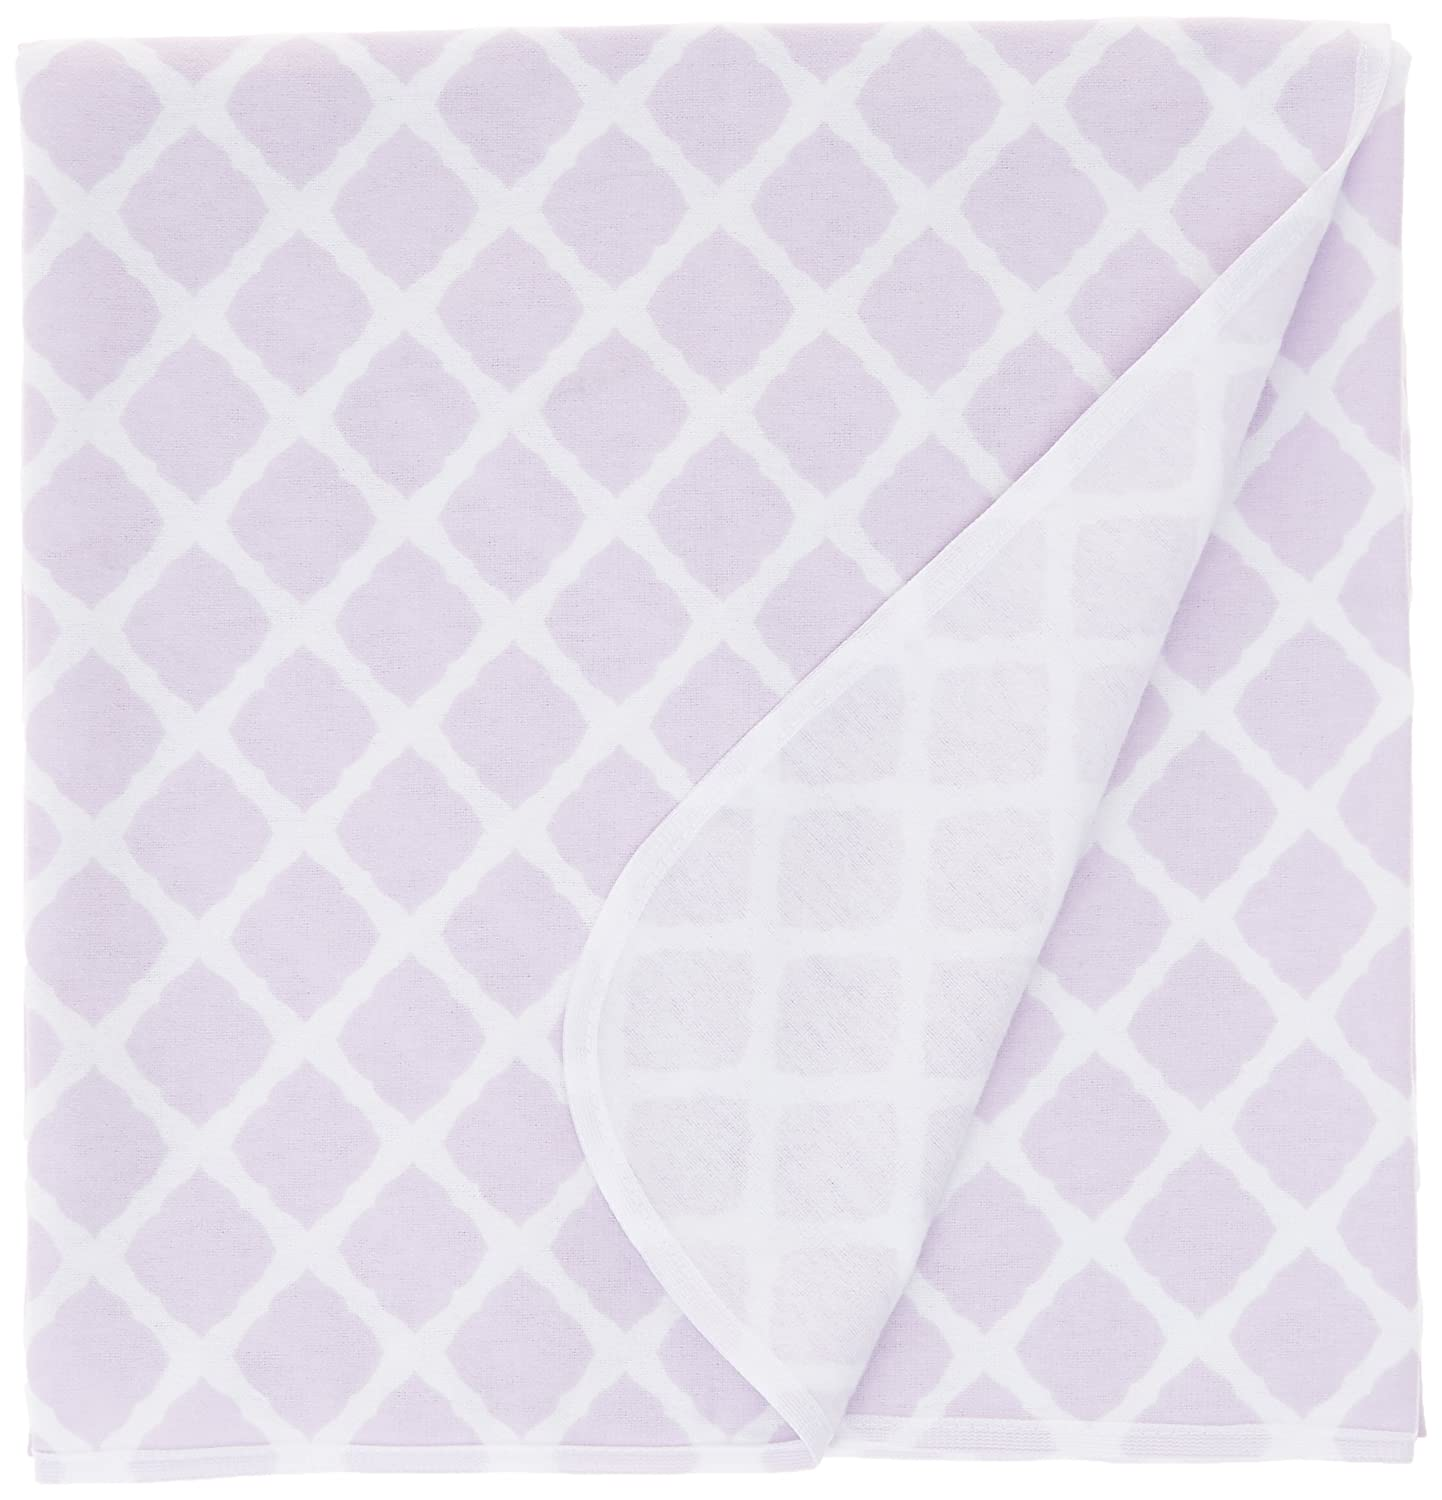 30 x 30 Square for swaddling Kushies Premium Soft Newborn Flannel Receiving Blanket Solid Grey